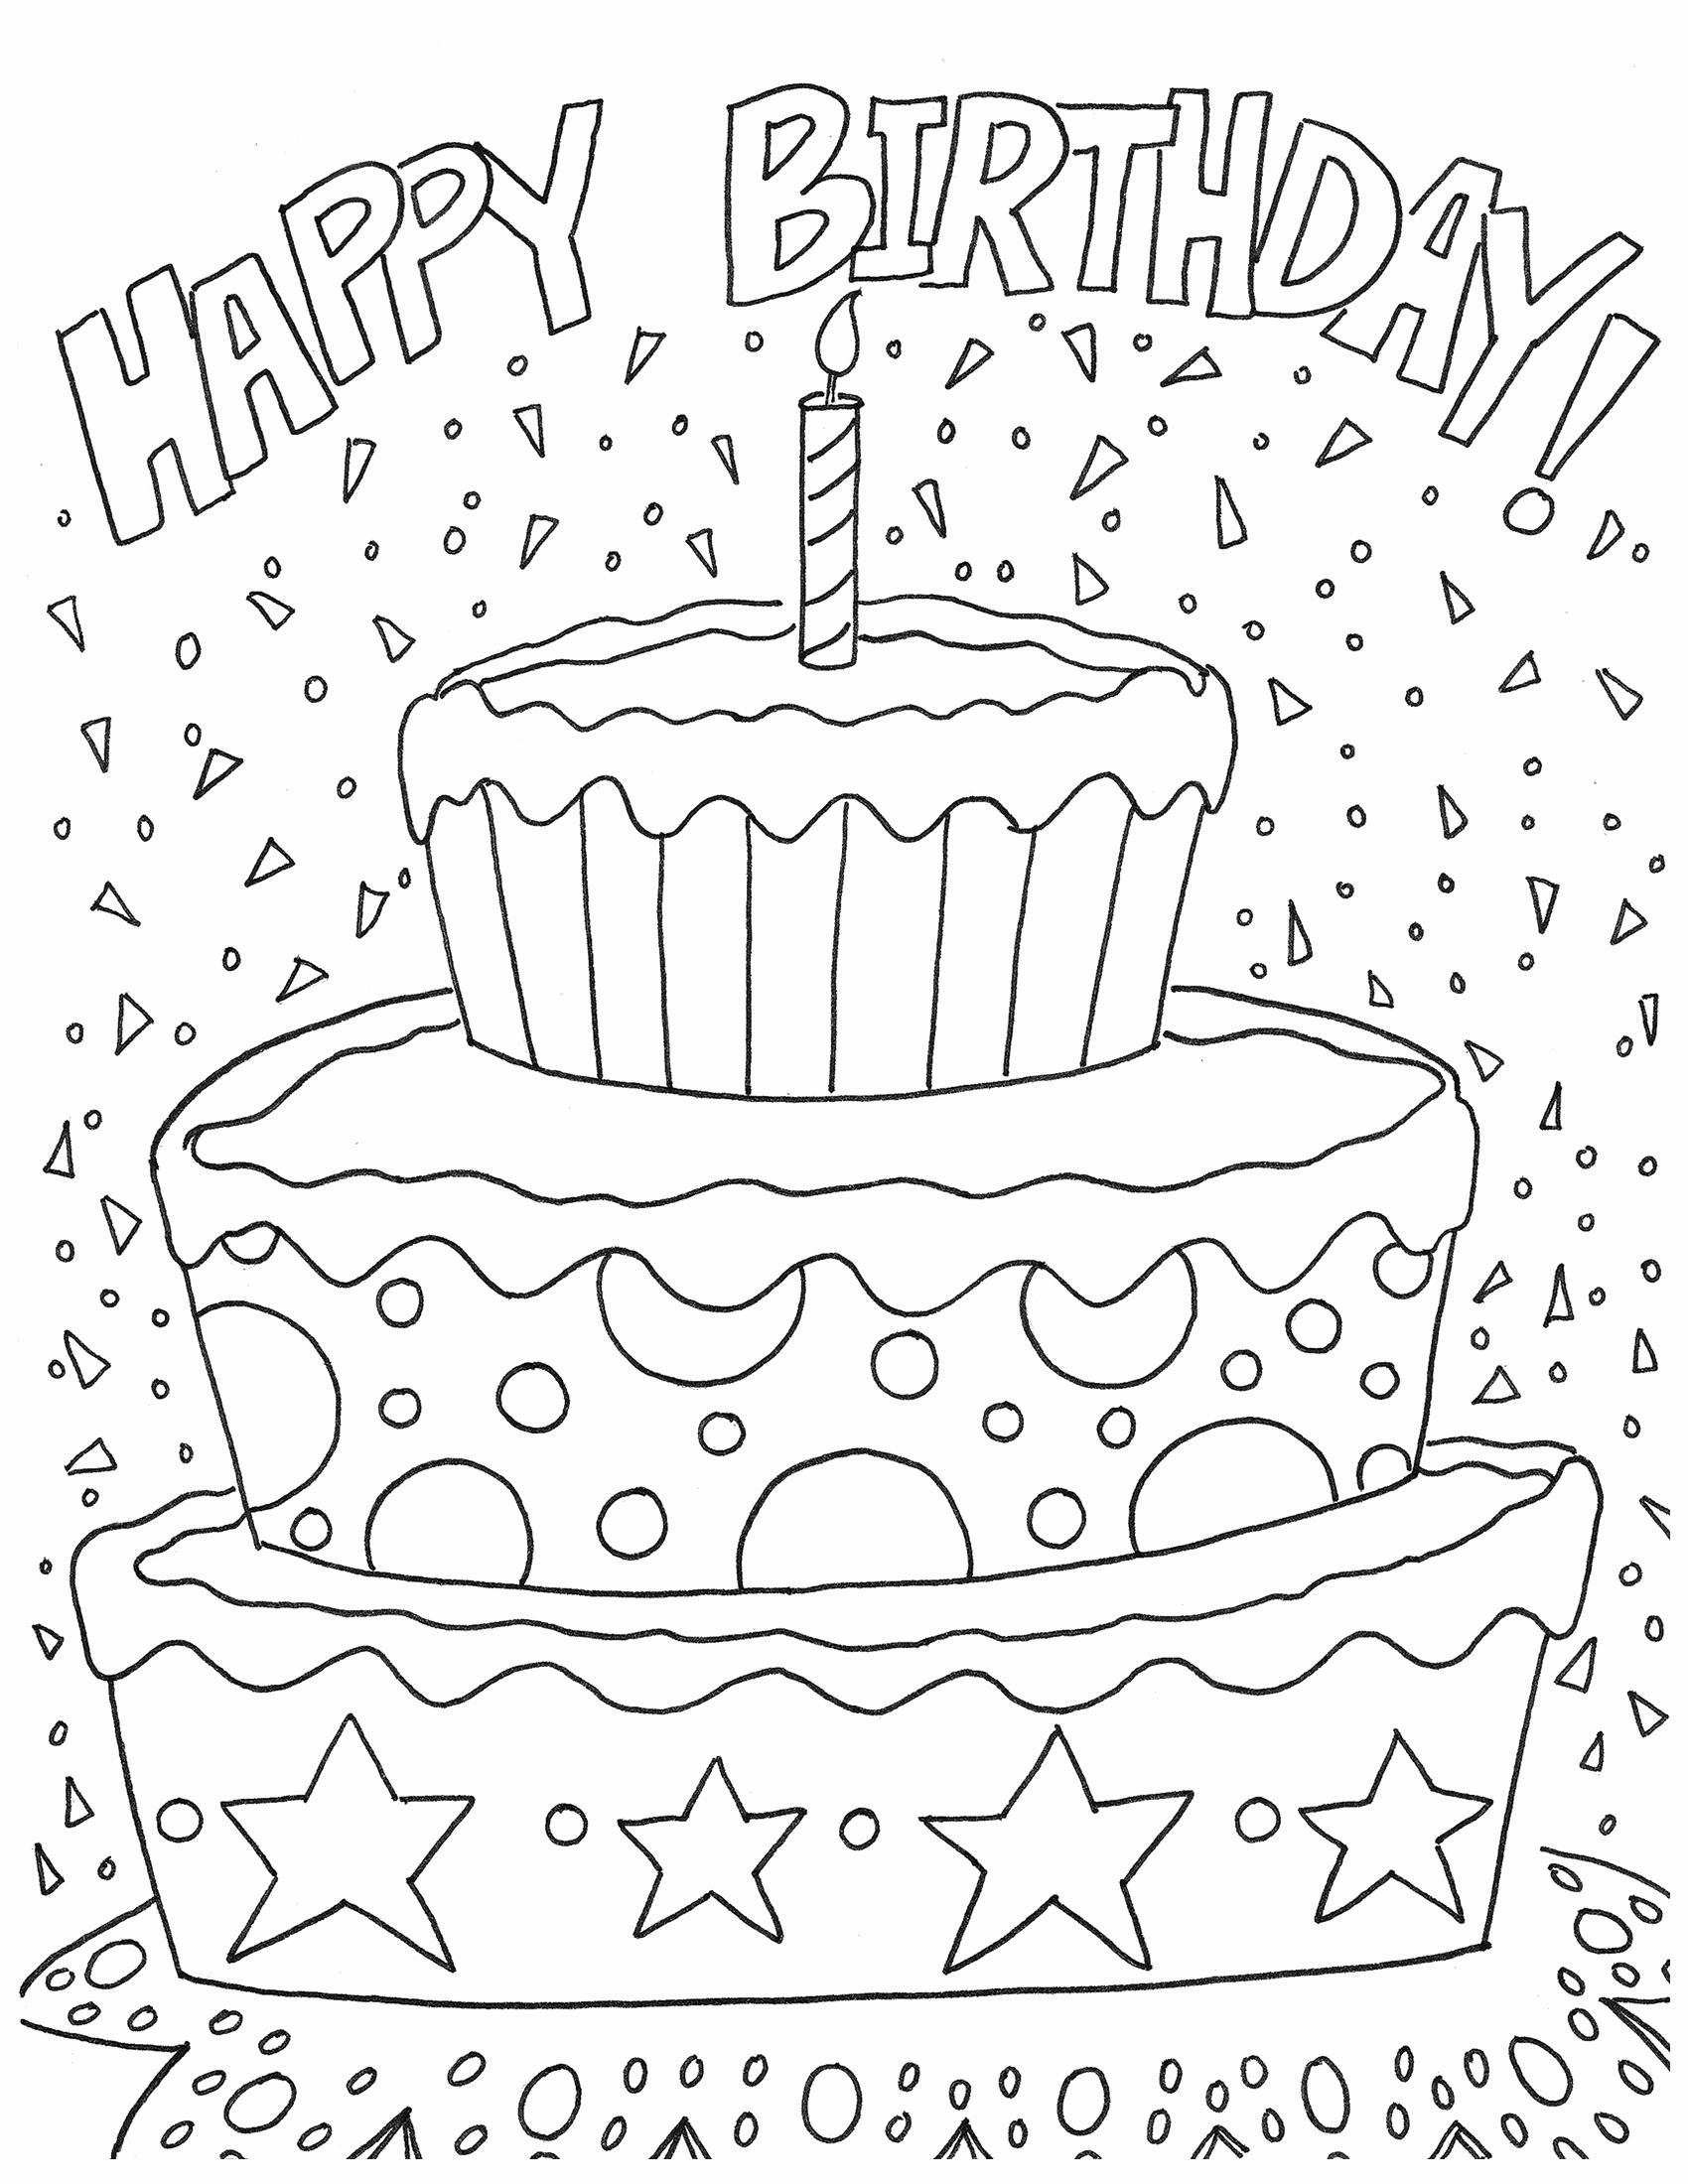 free birthday coloring pages to print ; birthday-coloring-pages-printable-free-happy-birthday-coloring-page-and-hershey-artzycreations-coloring-pages-birthday-party